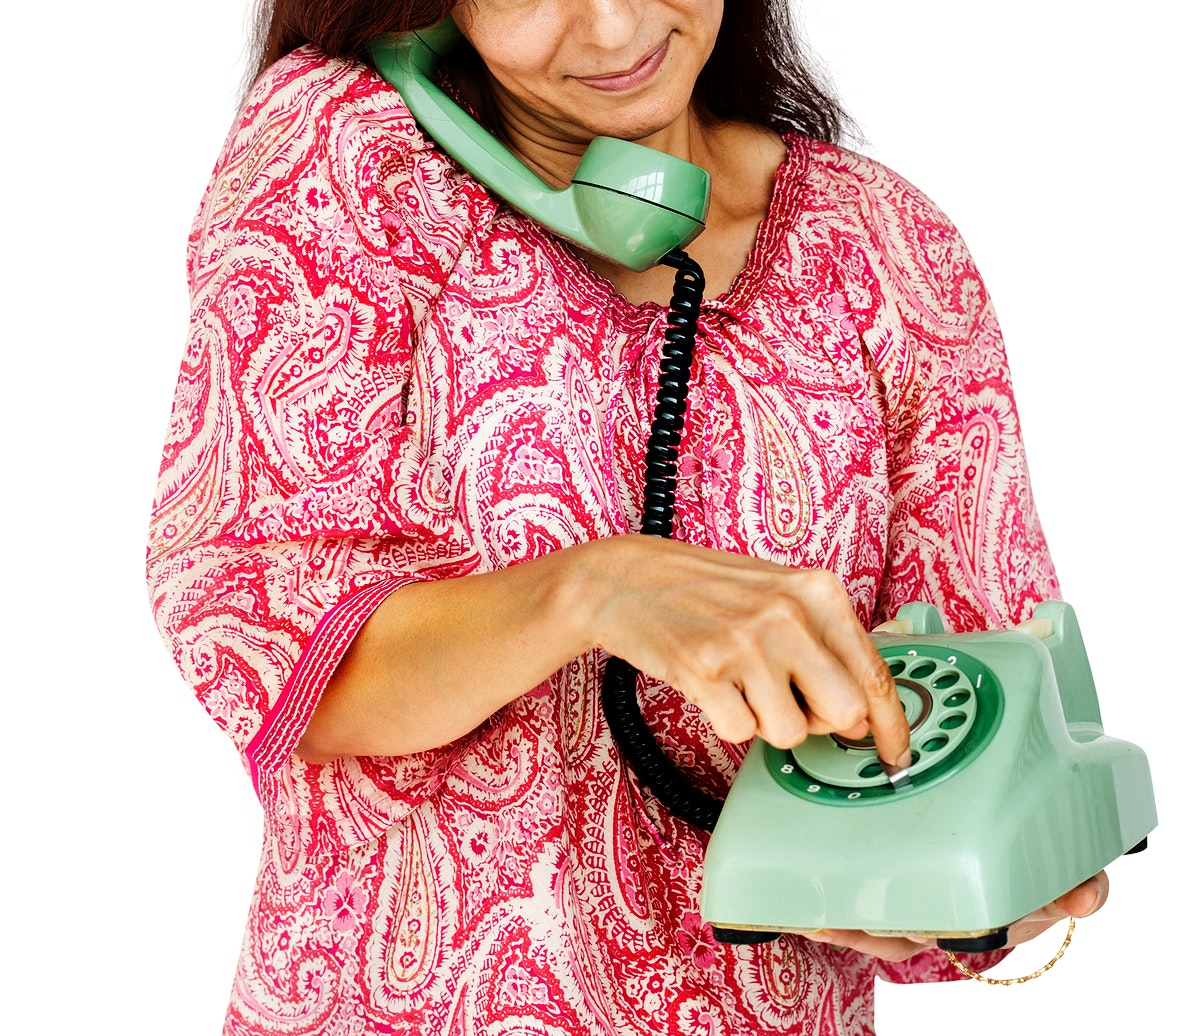 A woman is talking on a telephone